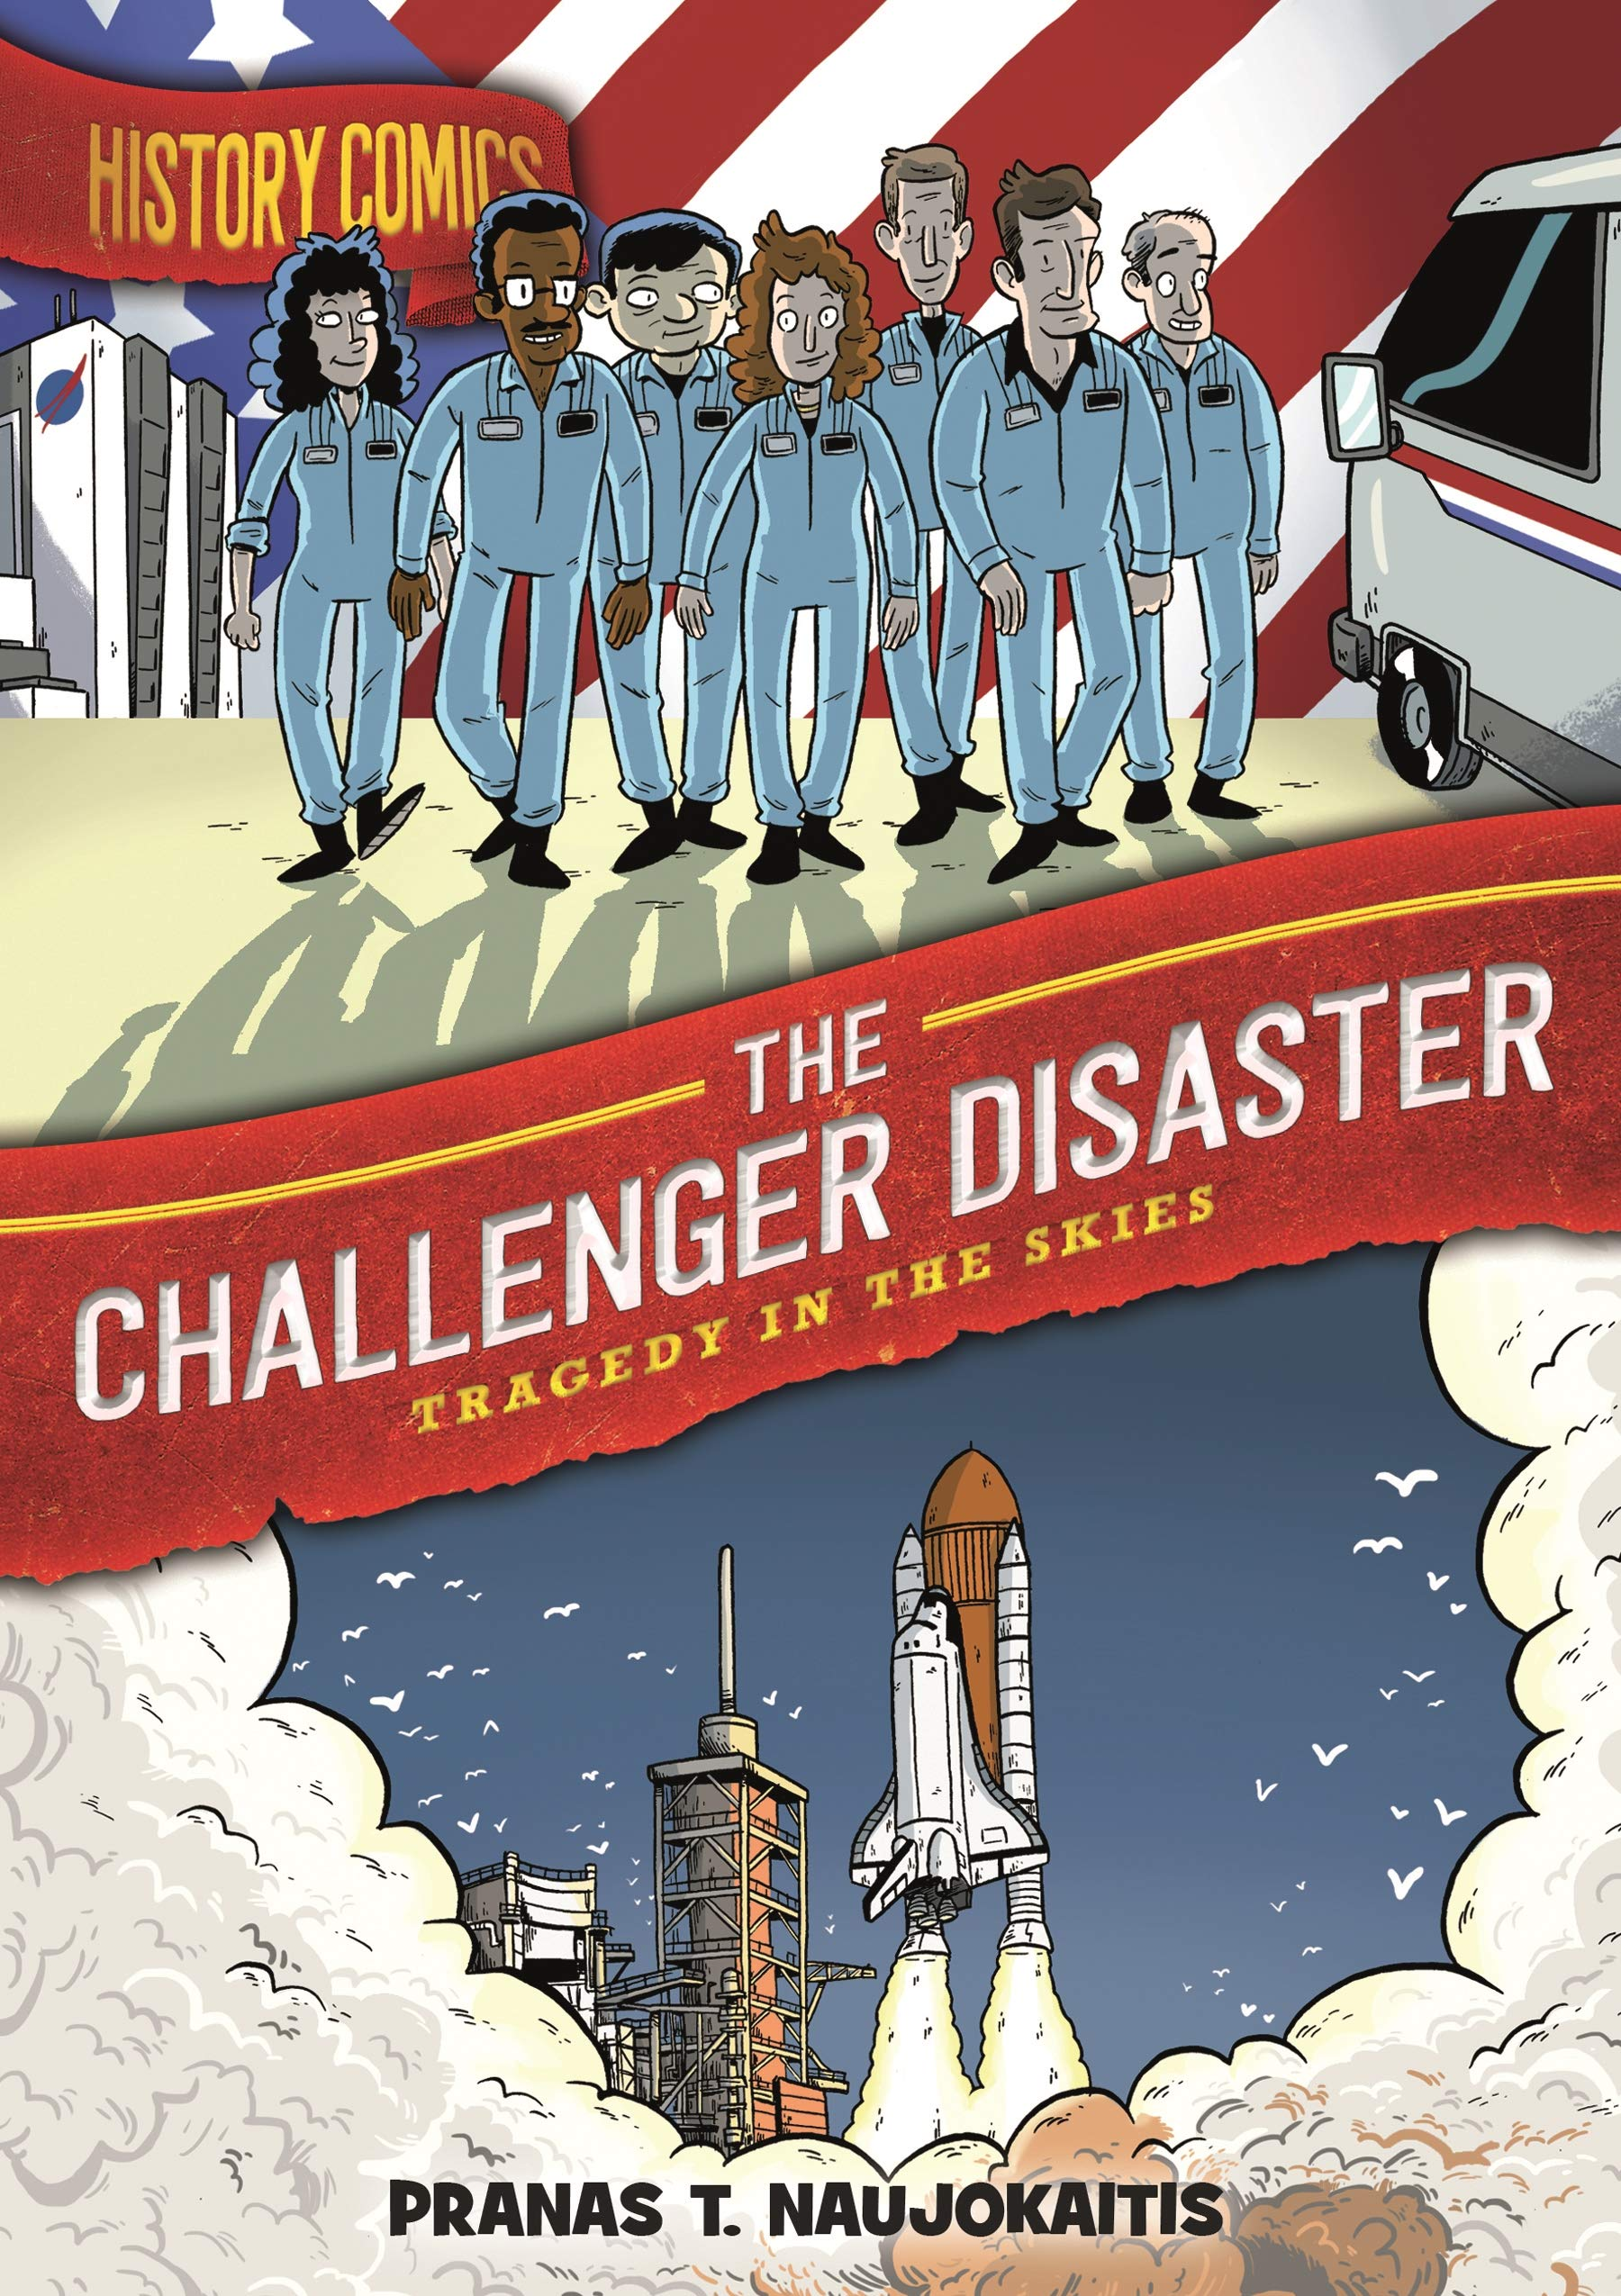 Amazon.com: History Comics: The Challenger Disaster: Tragedy in the Skies  (9781250174307): Naujokaitis, Pranas T.: Books